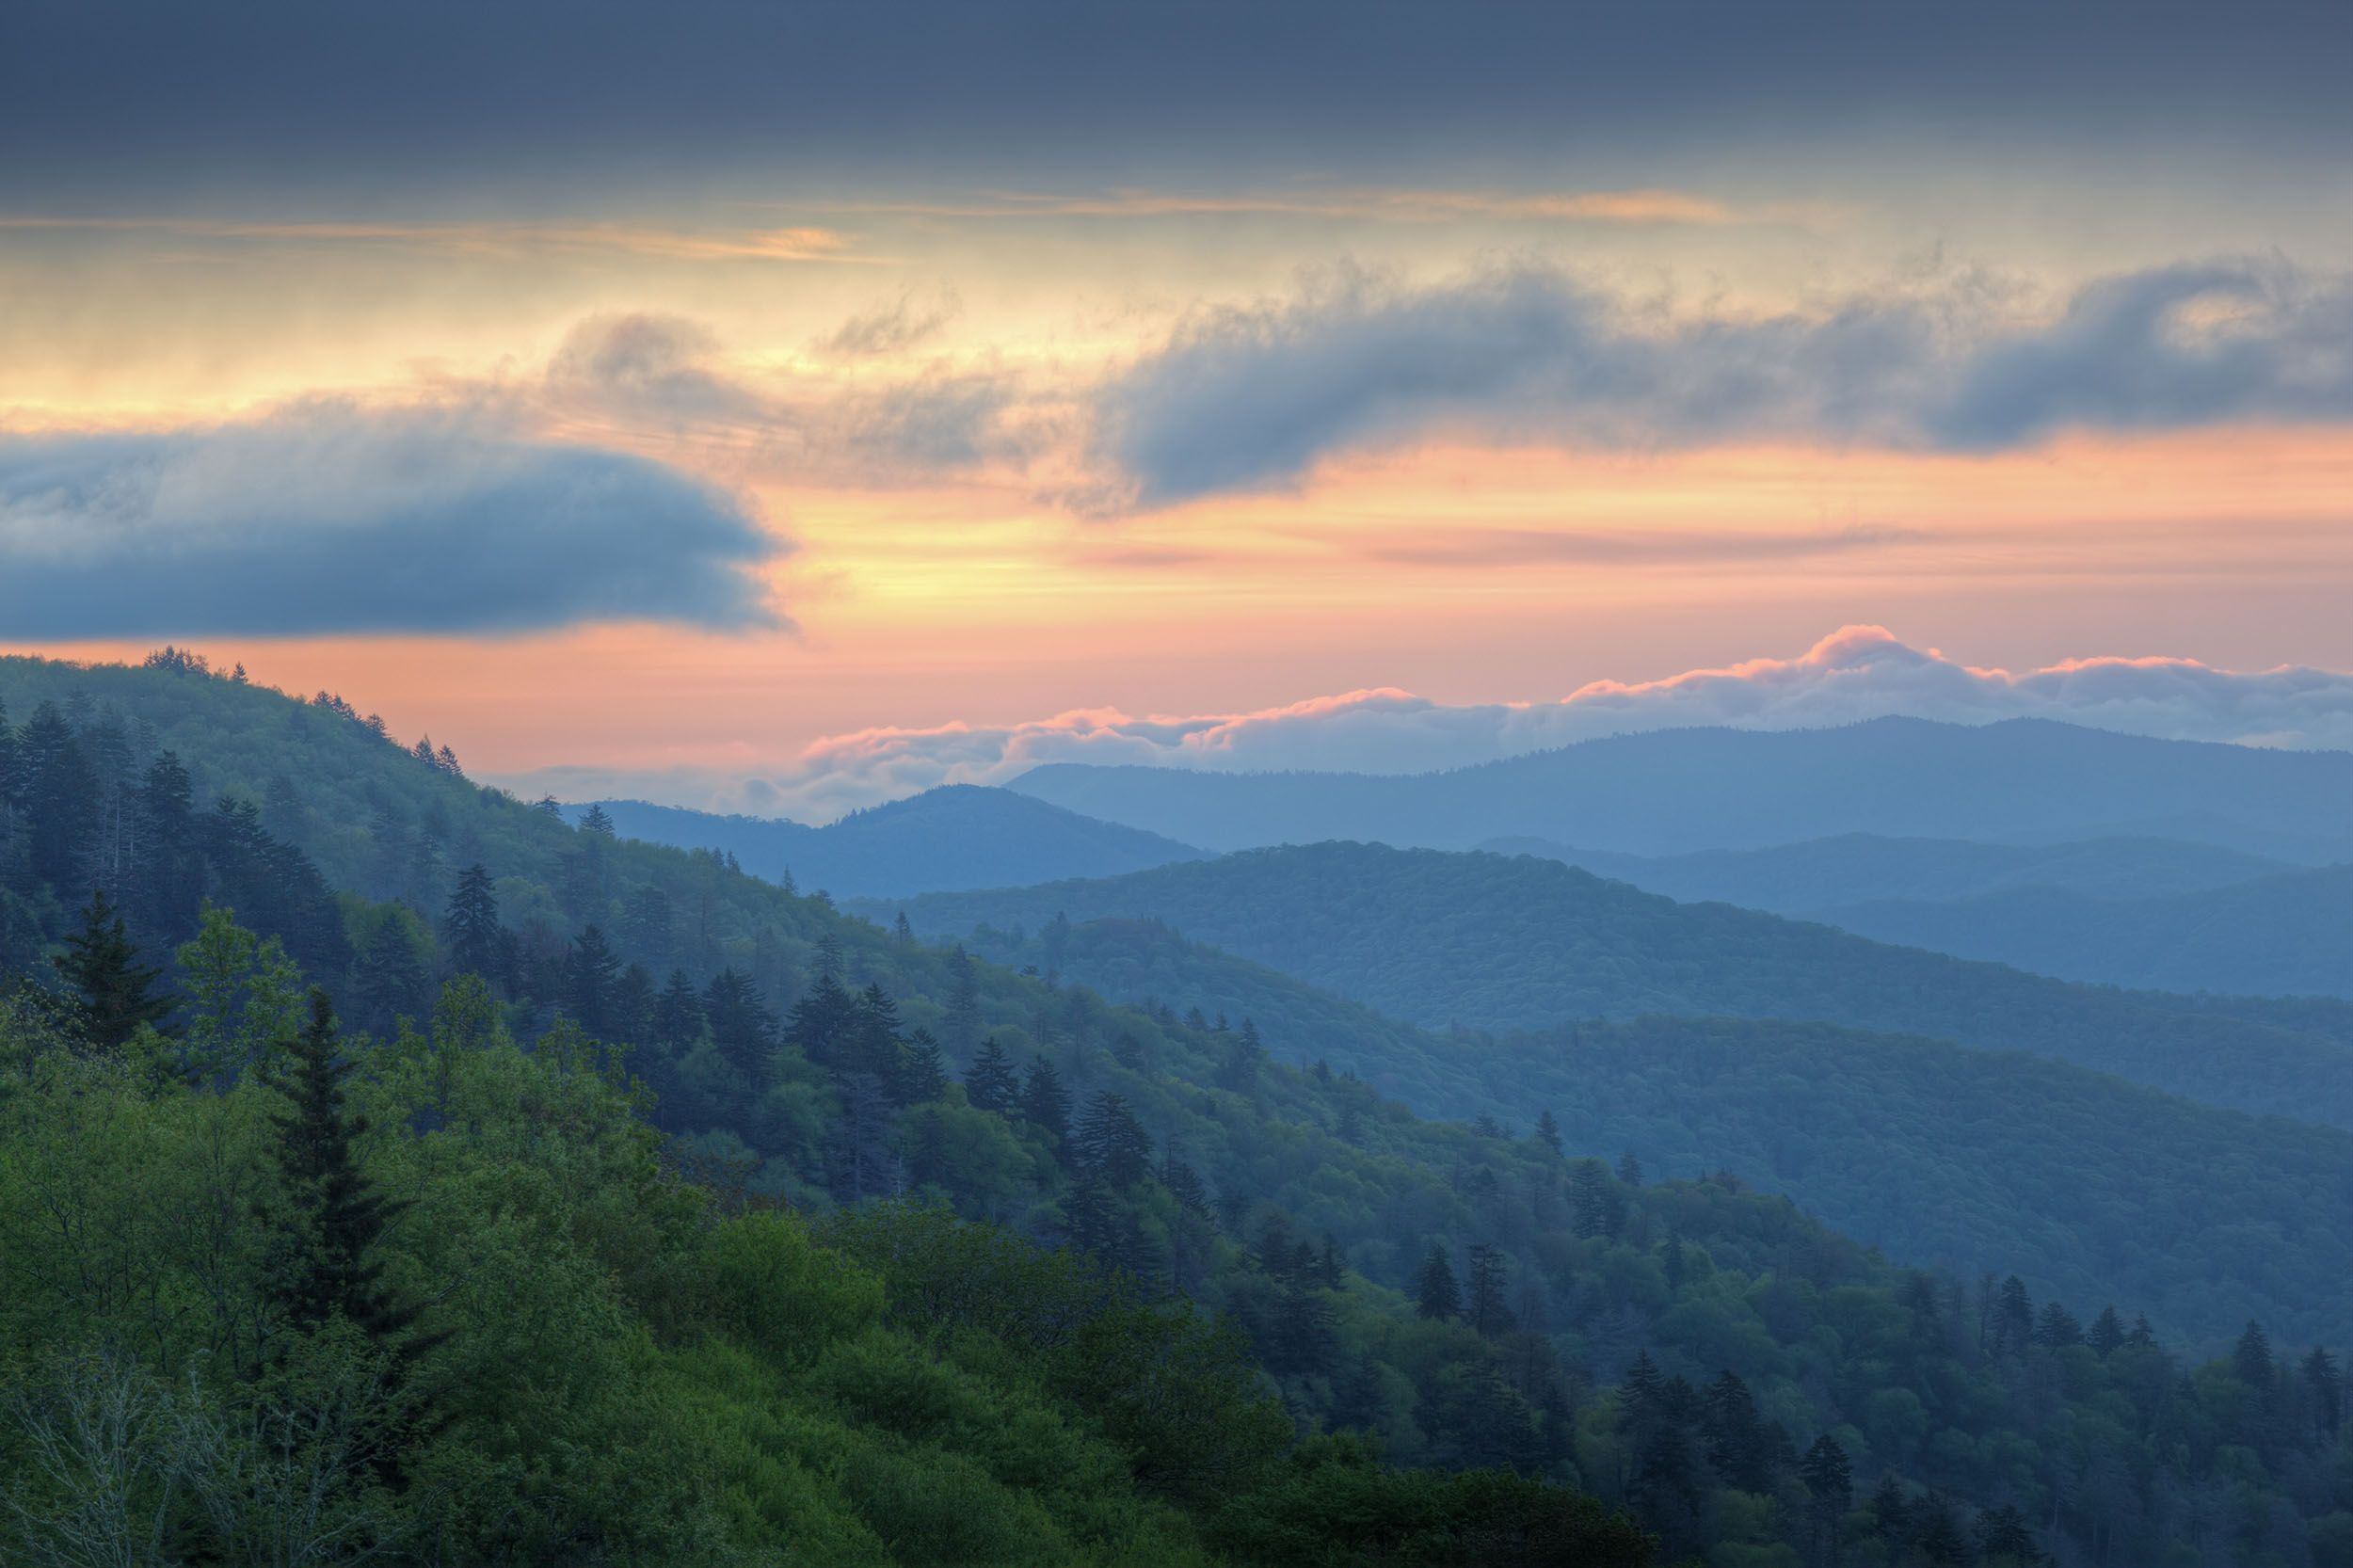 35 Great Smoky Mountains Fall Wallpapers   Download at WallpaperBro 2500x1666